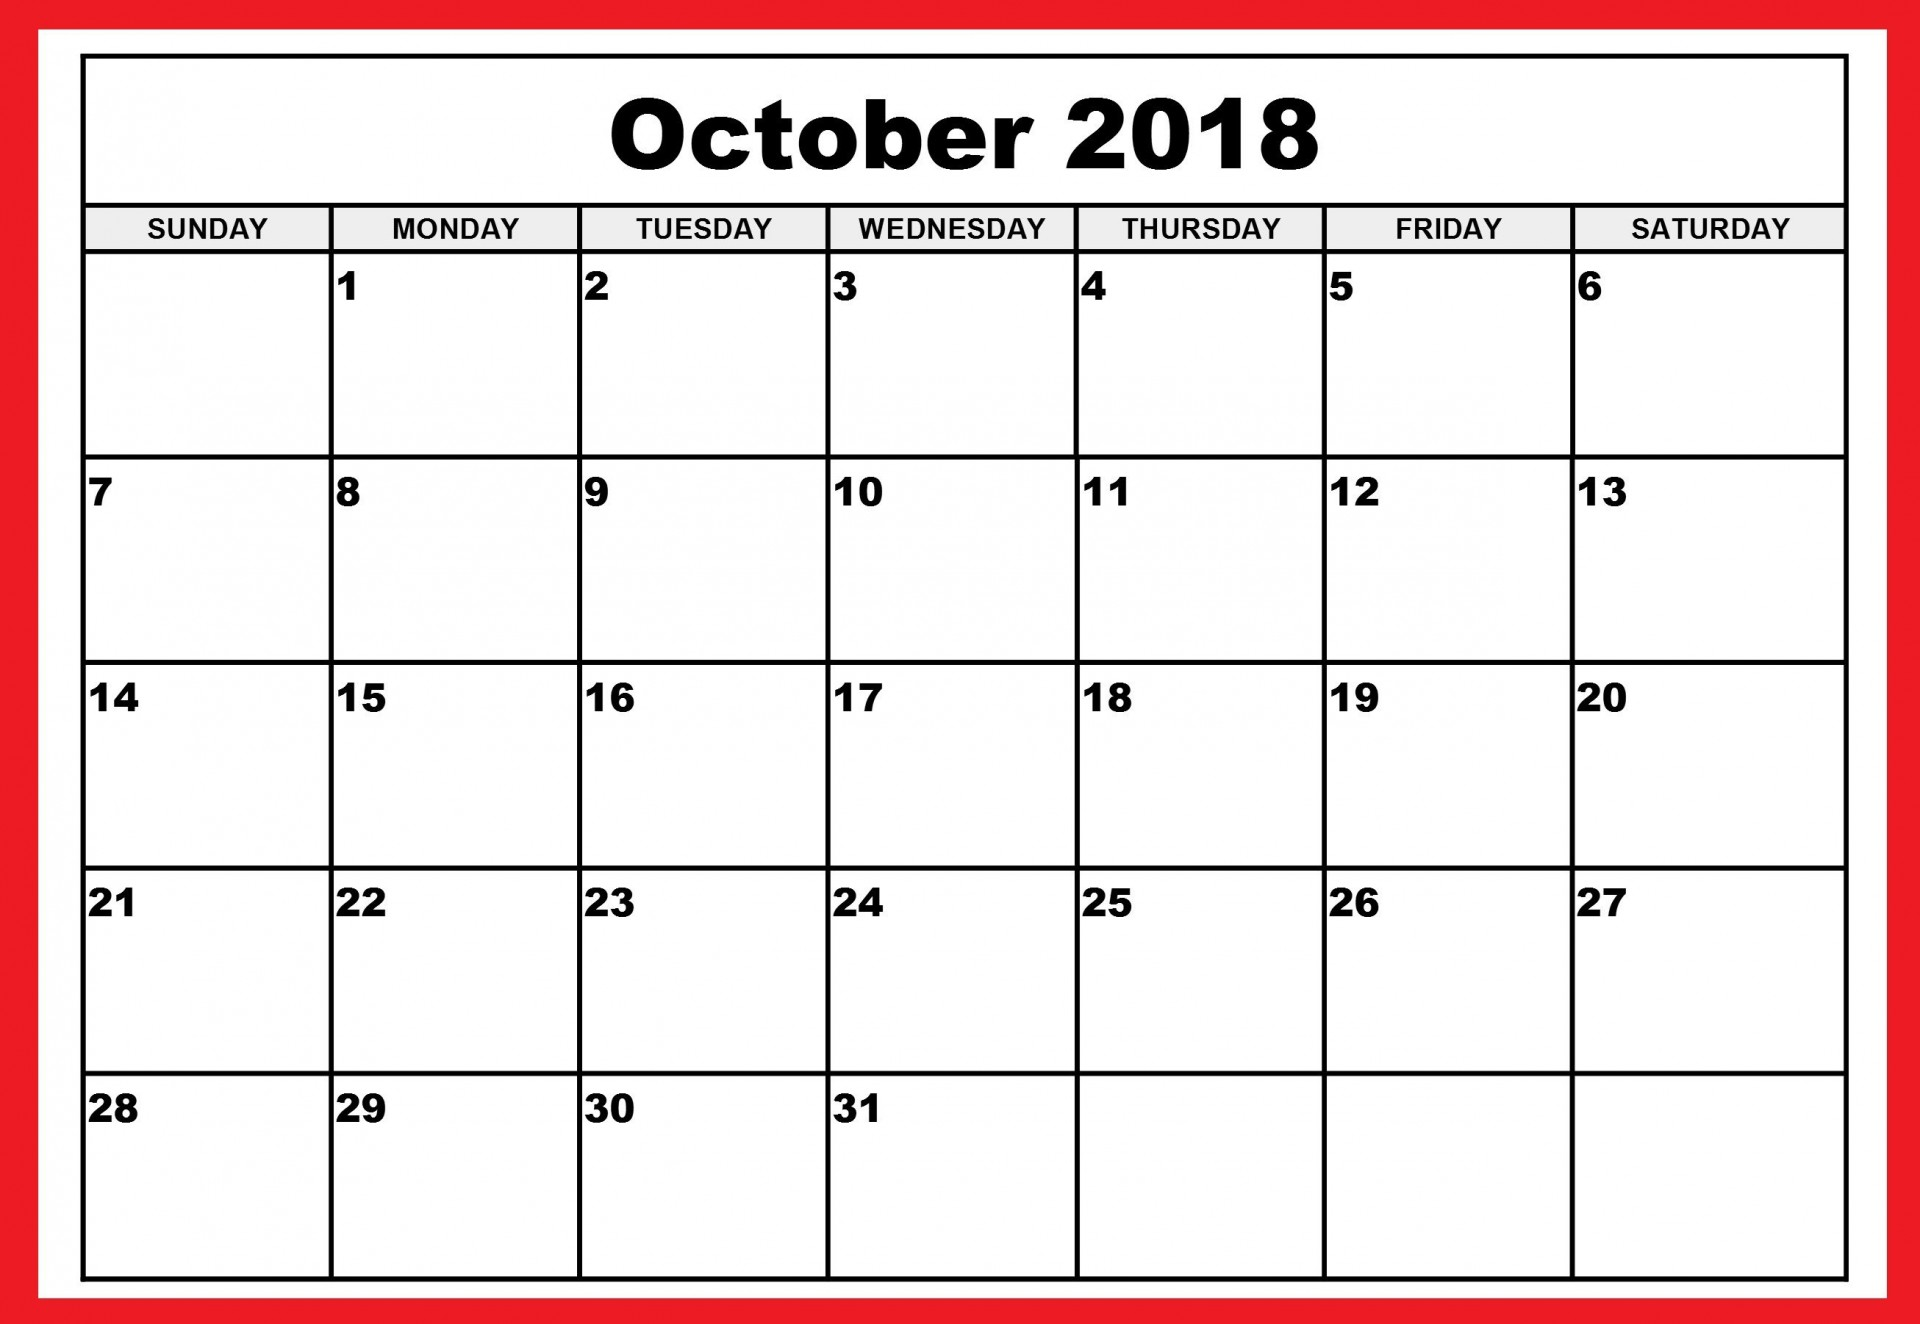 007 Awesome Calendar Template October 2018 Word High Def 1920